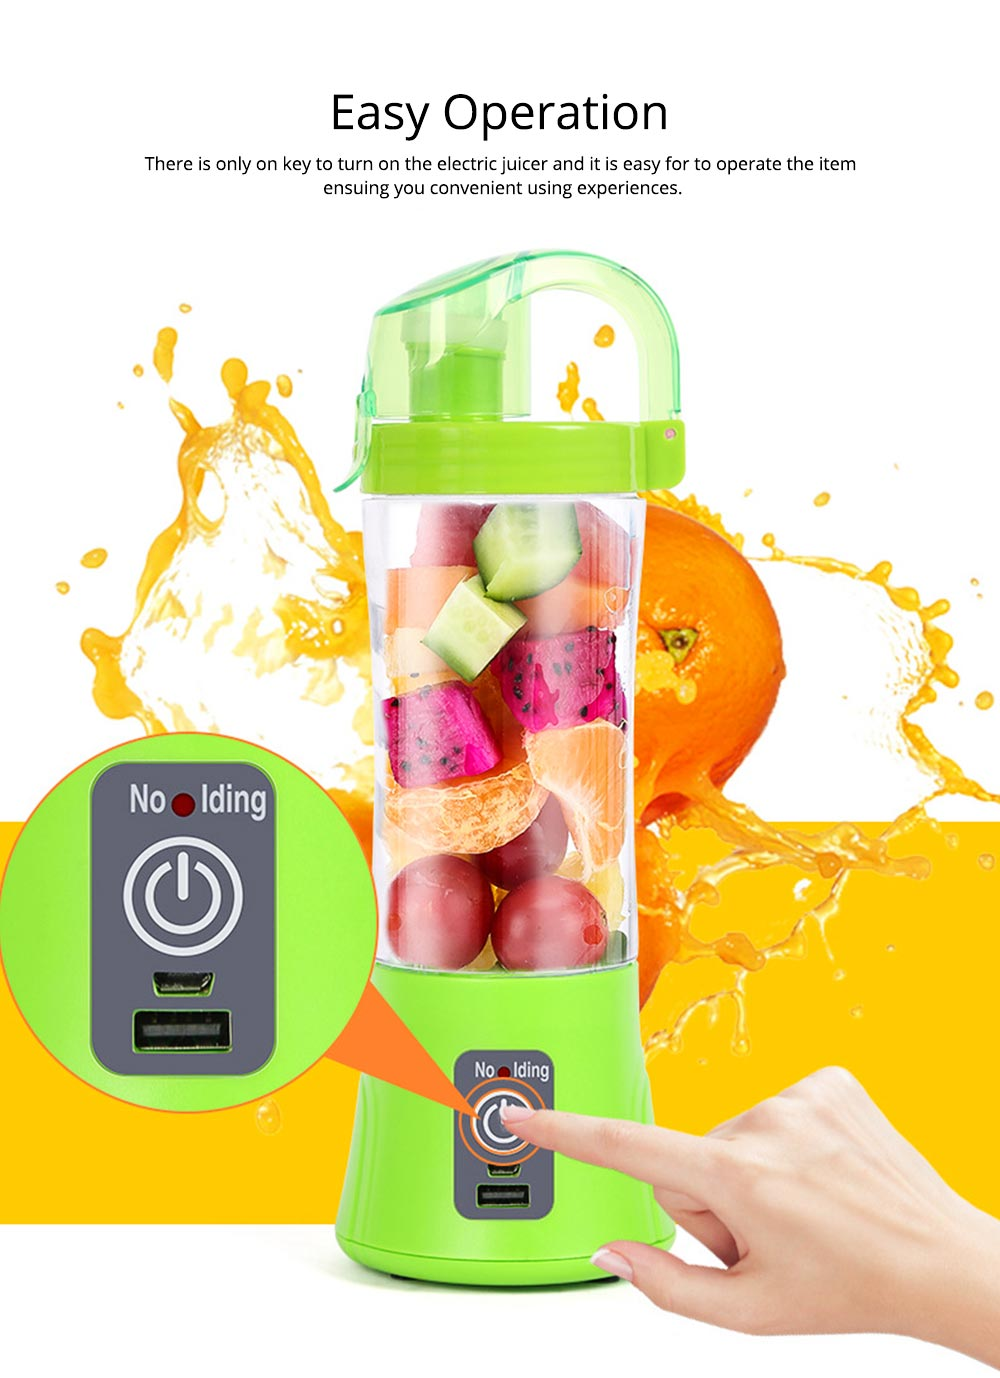 Portable Handy Household Electric Juicer, Multifunctional Juice Extractor Kitchen Tools with Power Bank Function 3